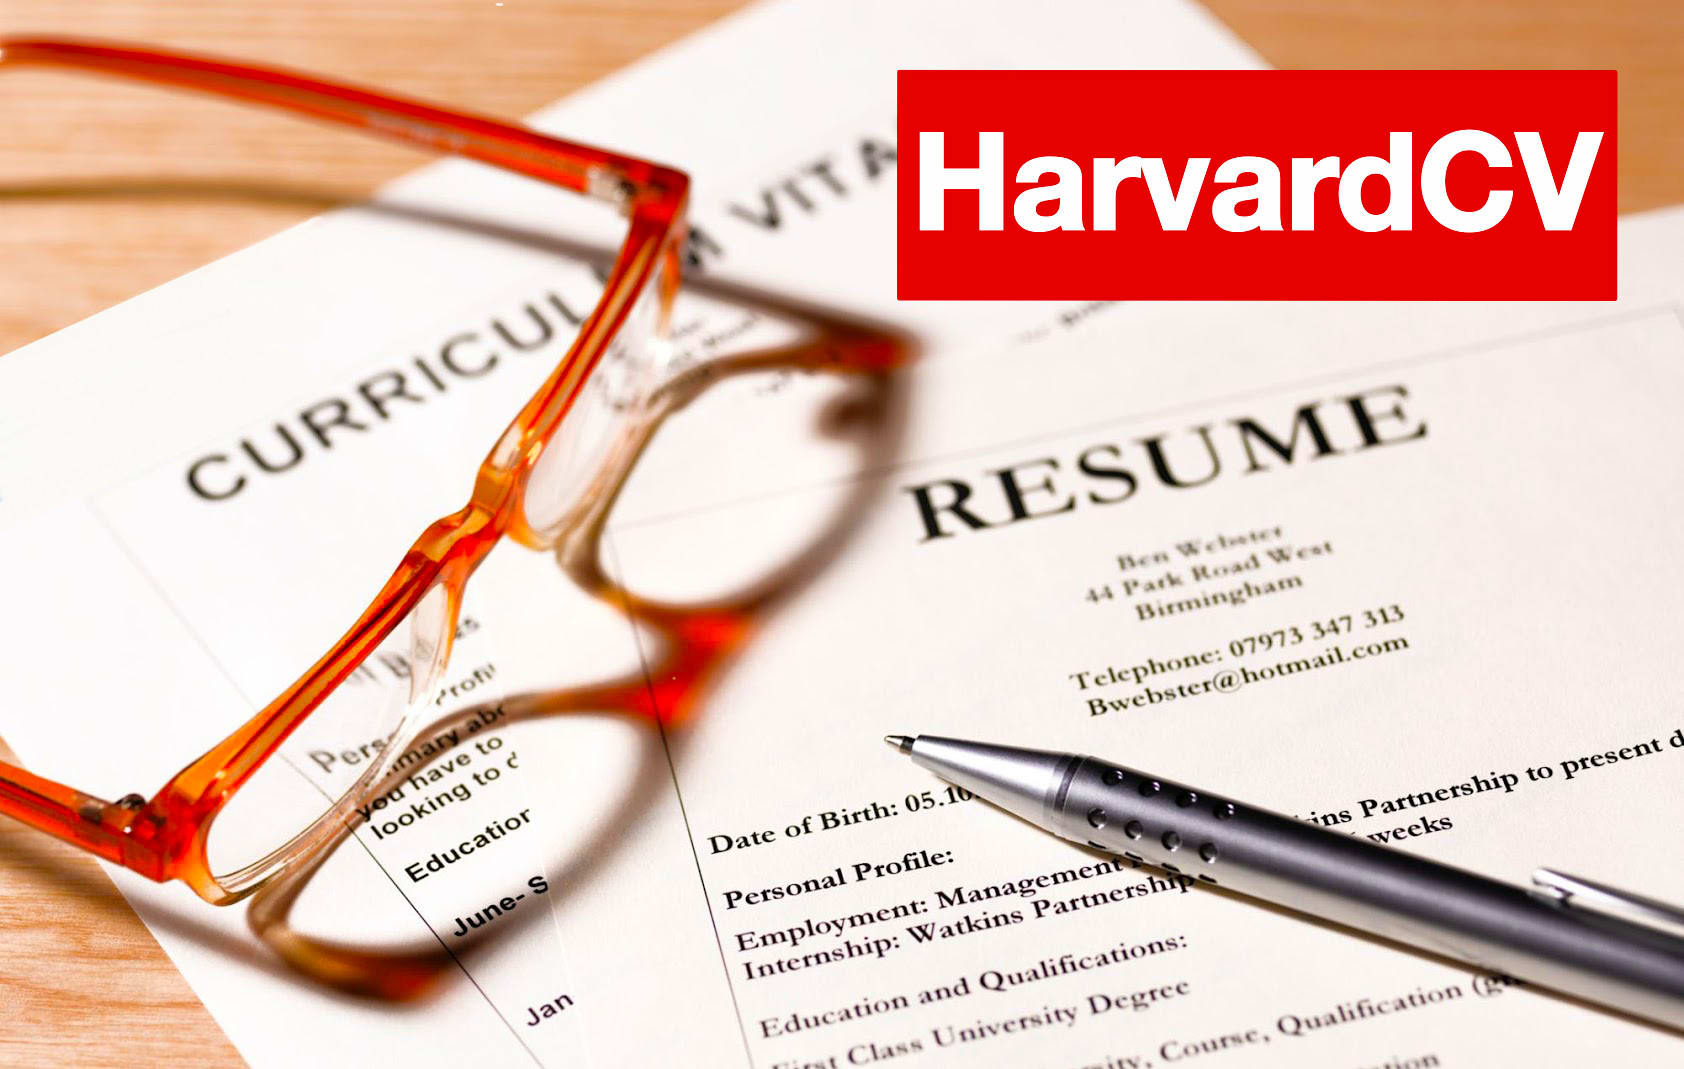 write and upgrade your resume cv cover letter linkedin by harvardcv profile writing help Resume Resume And Linkedin Profile Writing